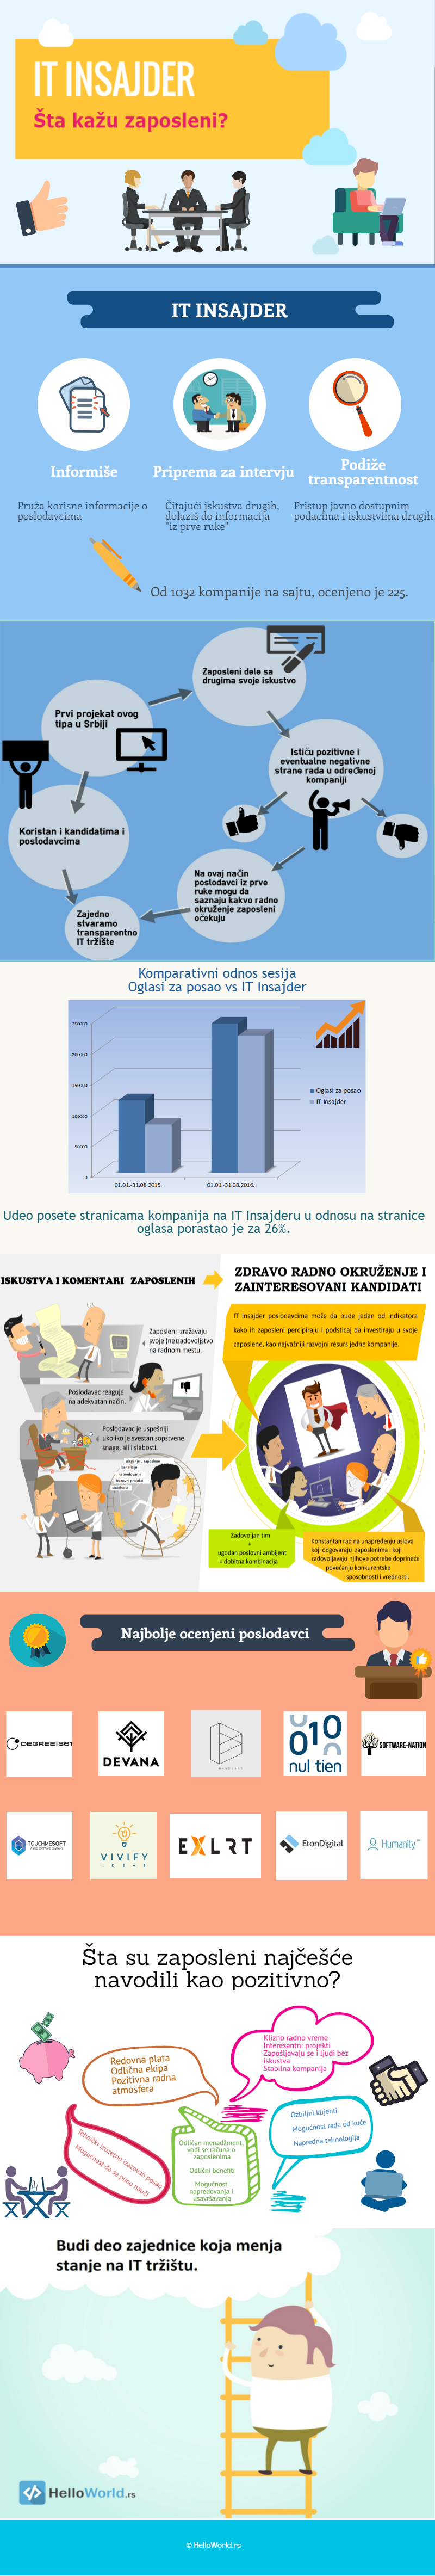 IT_insajder_infografik